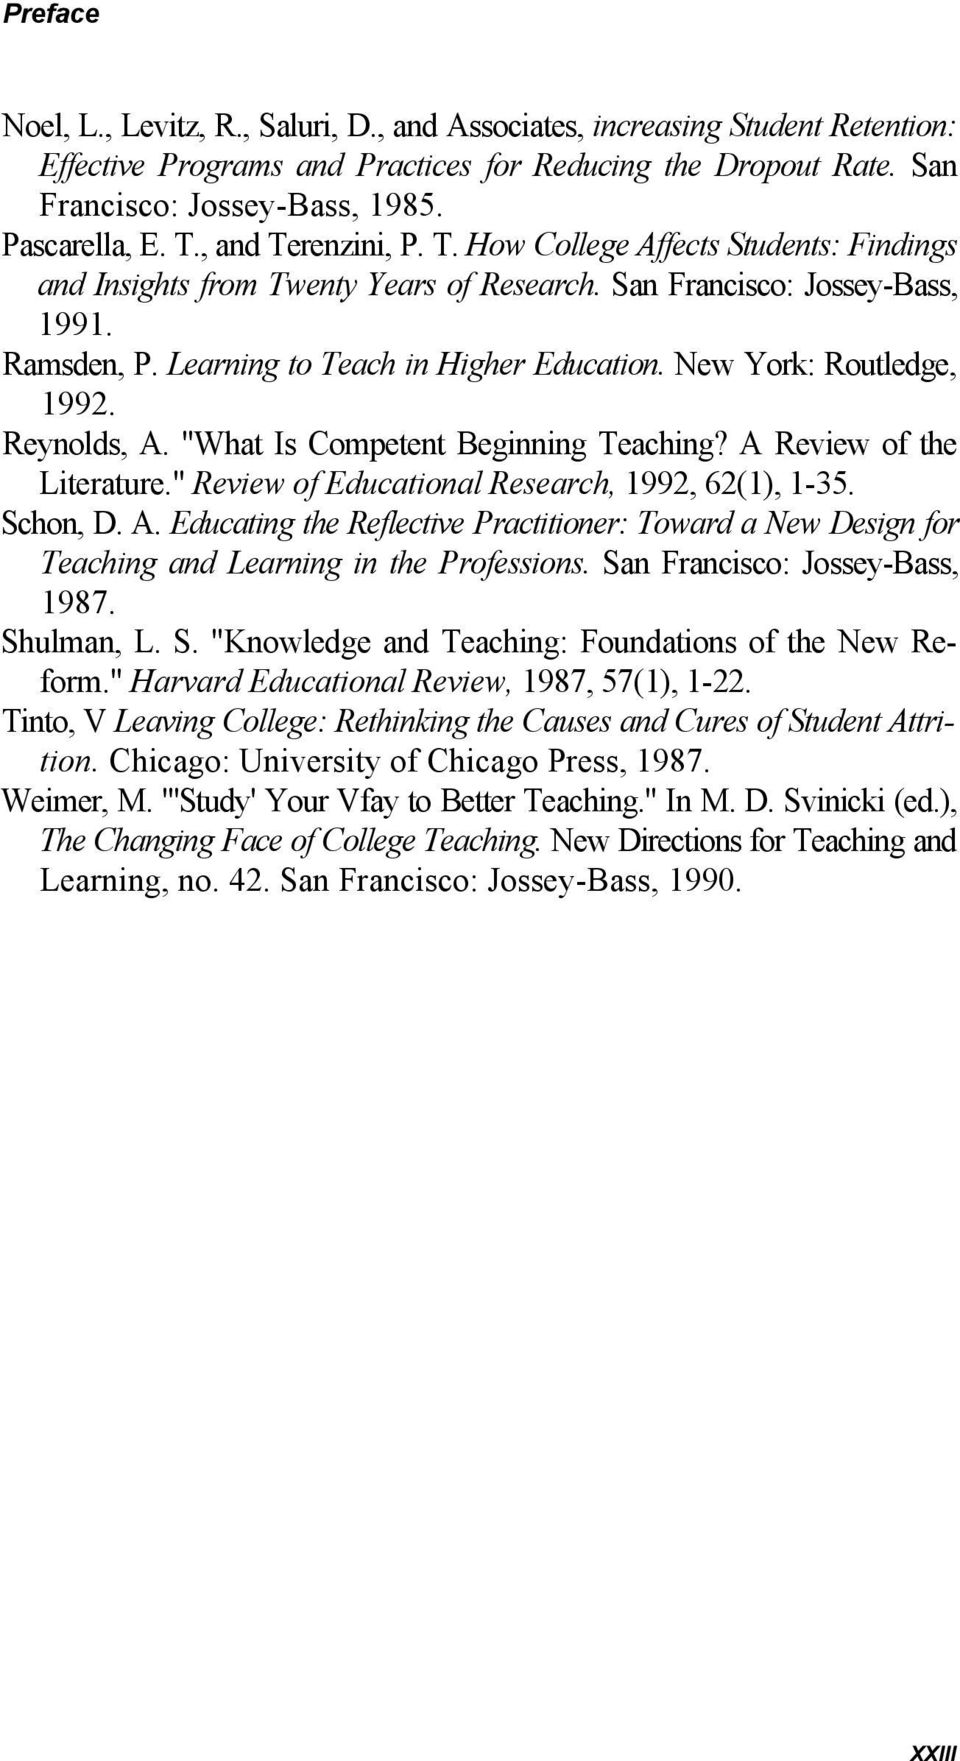 "New York: Routledge, 1992. Reynolds, A. ""What Is Competent Beginning Teaching? A Review of the Literature."" Review of Educational Research, 1992, 62(1), 1-35. Schon, D. A. Educating the Reflective Practitioner: Toward a New Design for Teaching and Learning in the Professions."